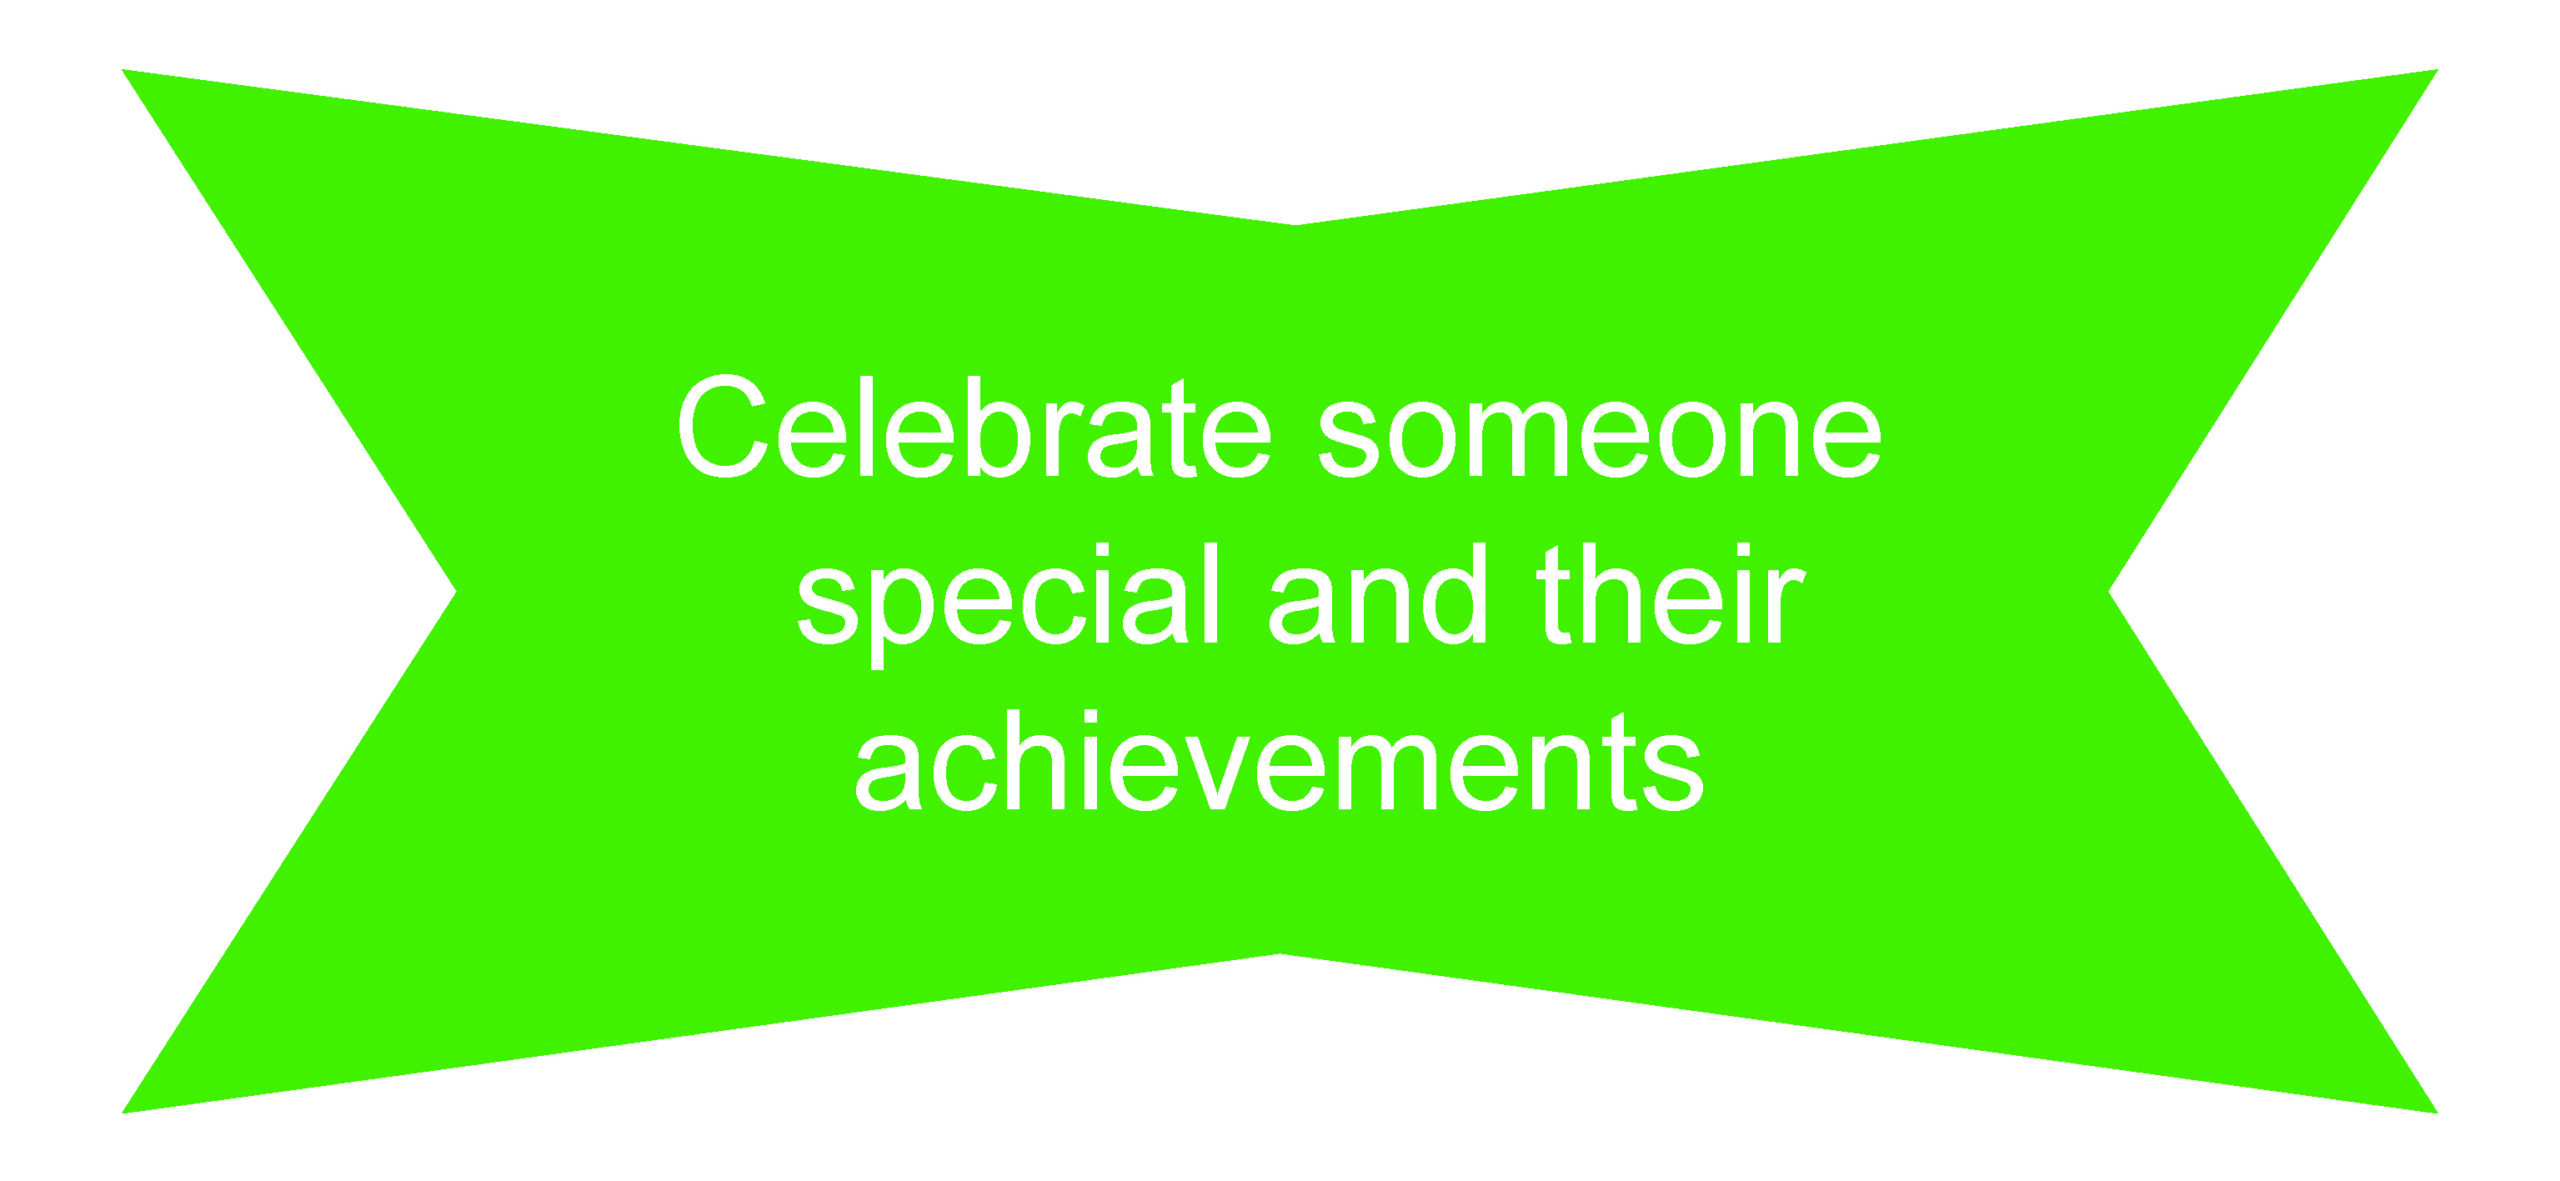 Celebrate someone special and their achievements